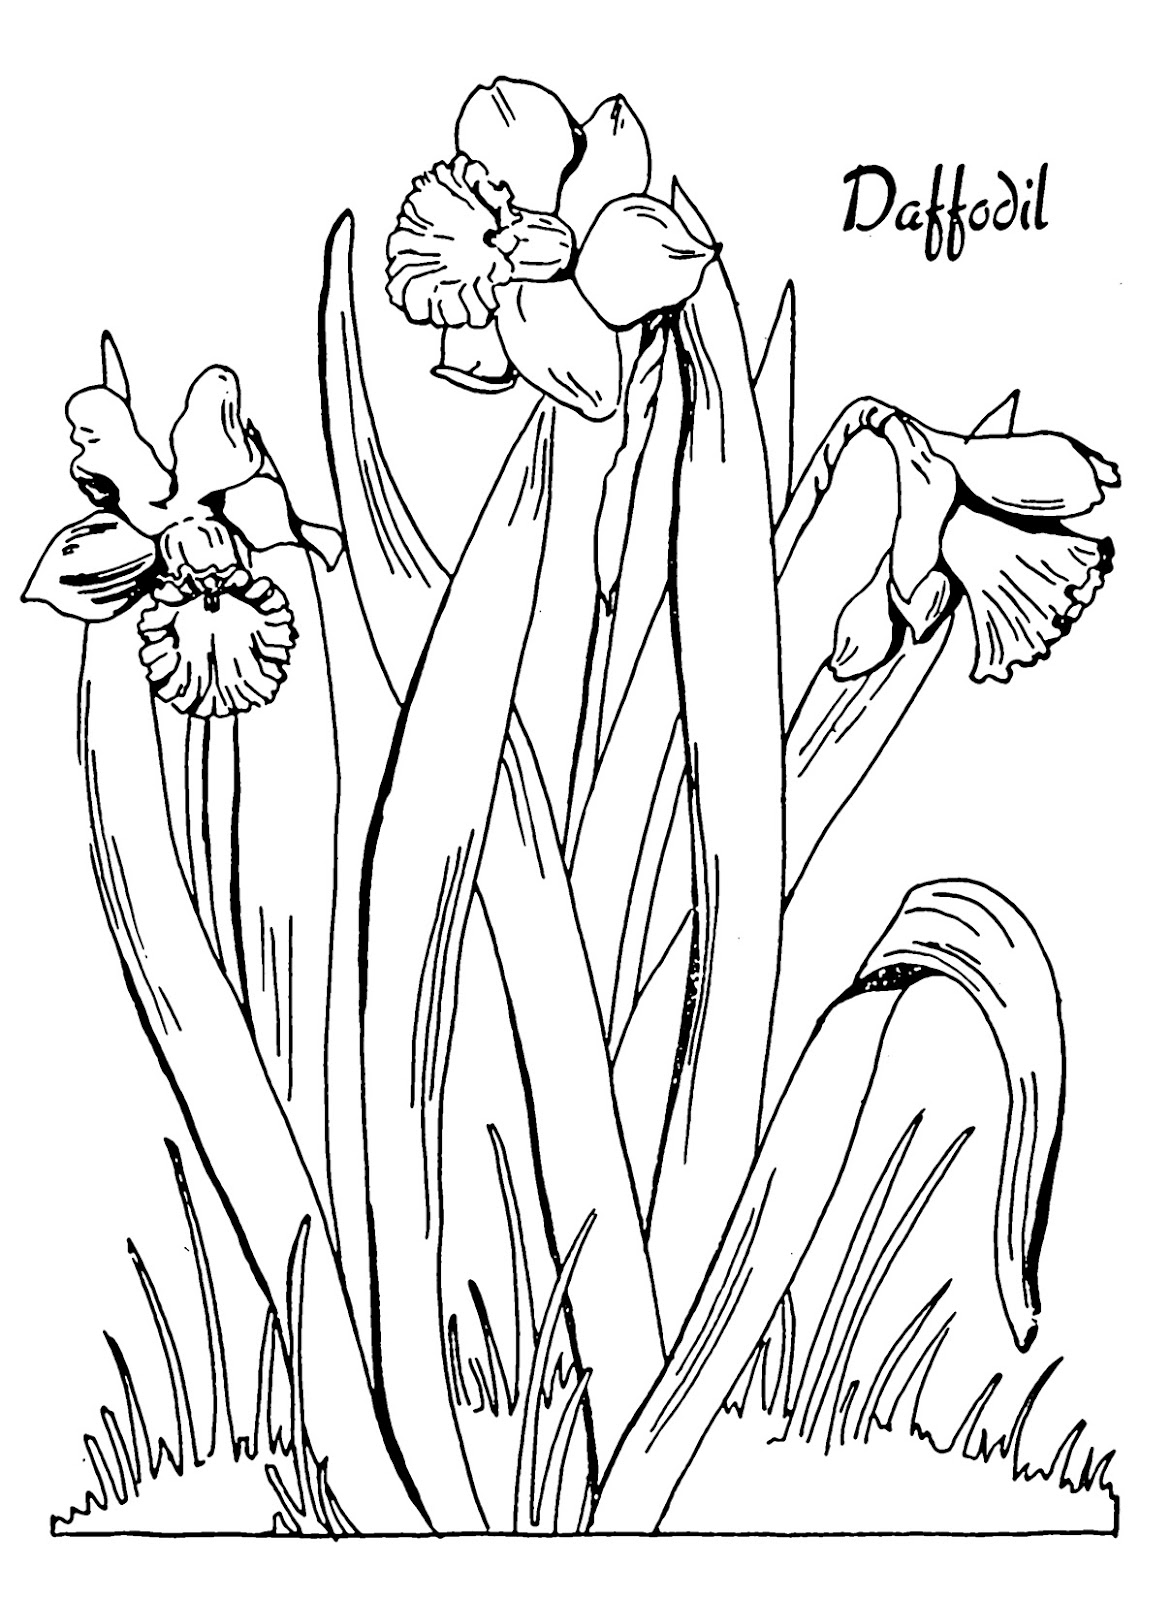 graphical coloring pages - photo#46